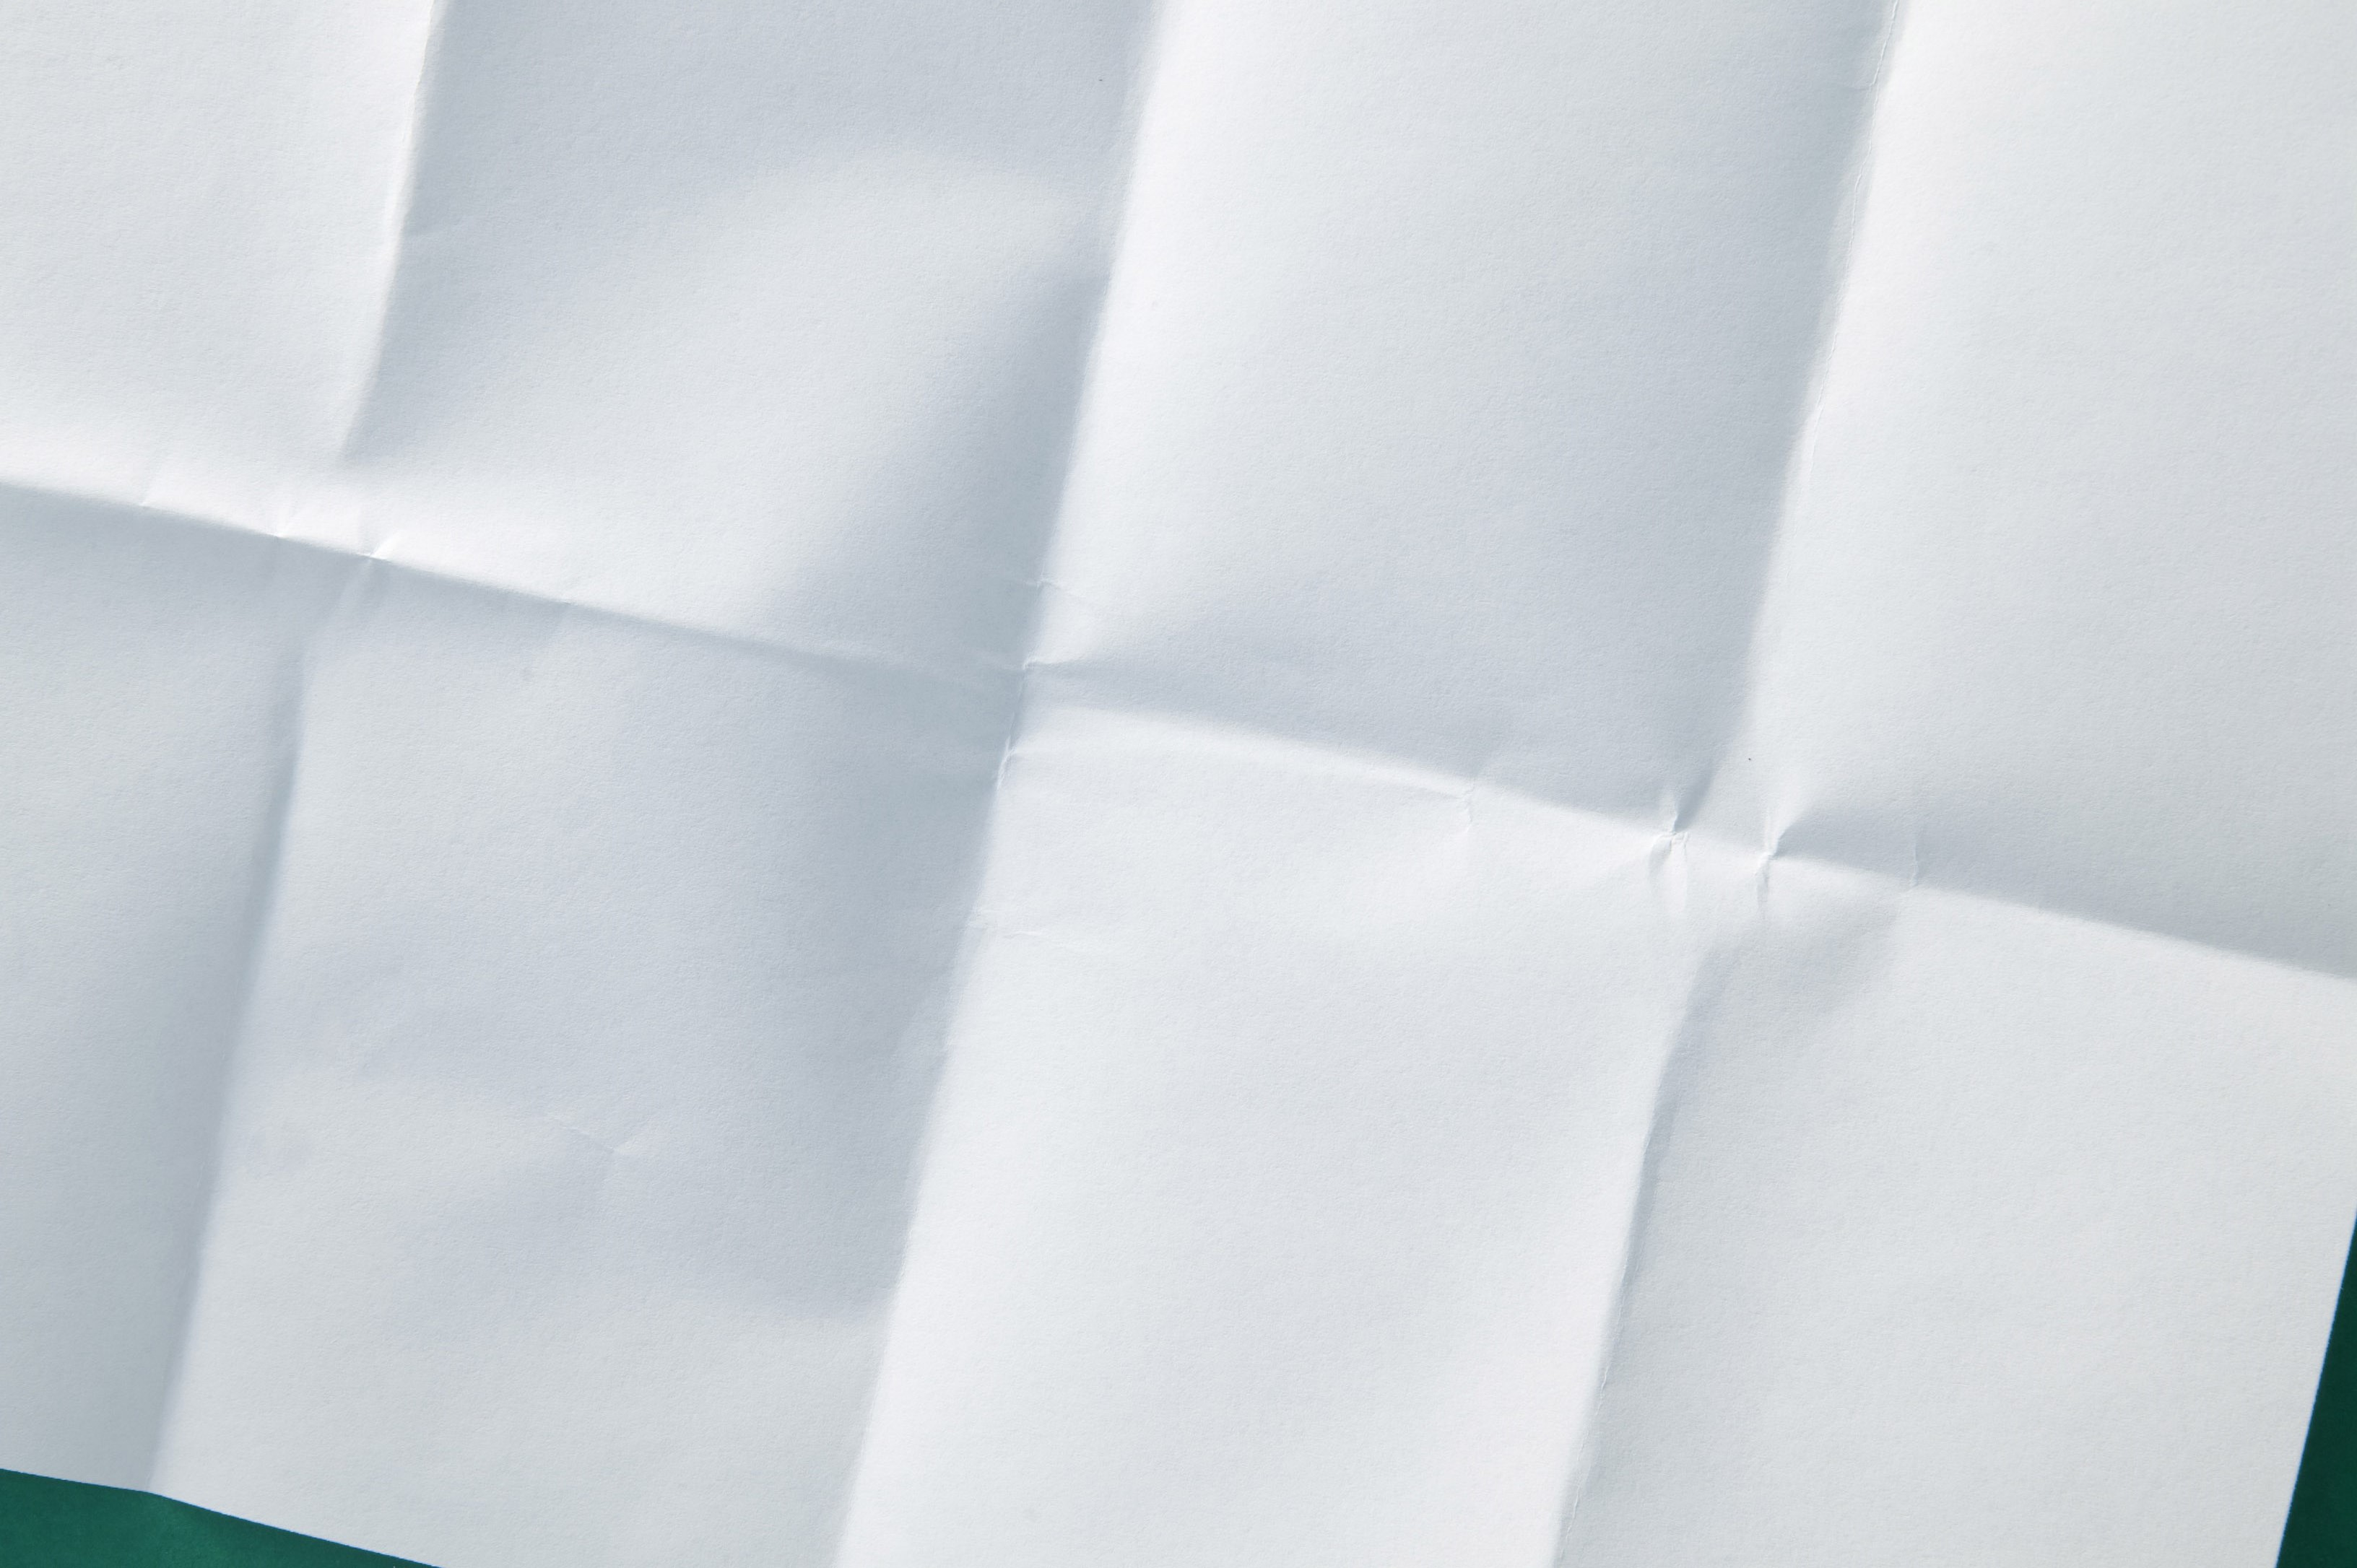 a sheet of paper folder into 8 and unfolded again at an angle